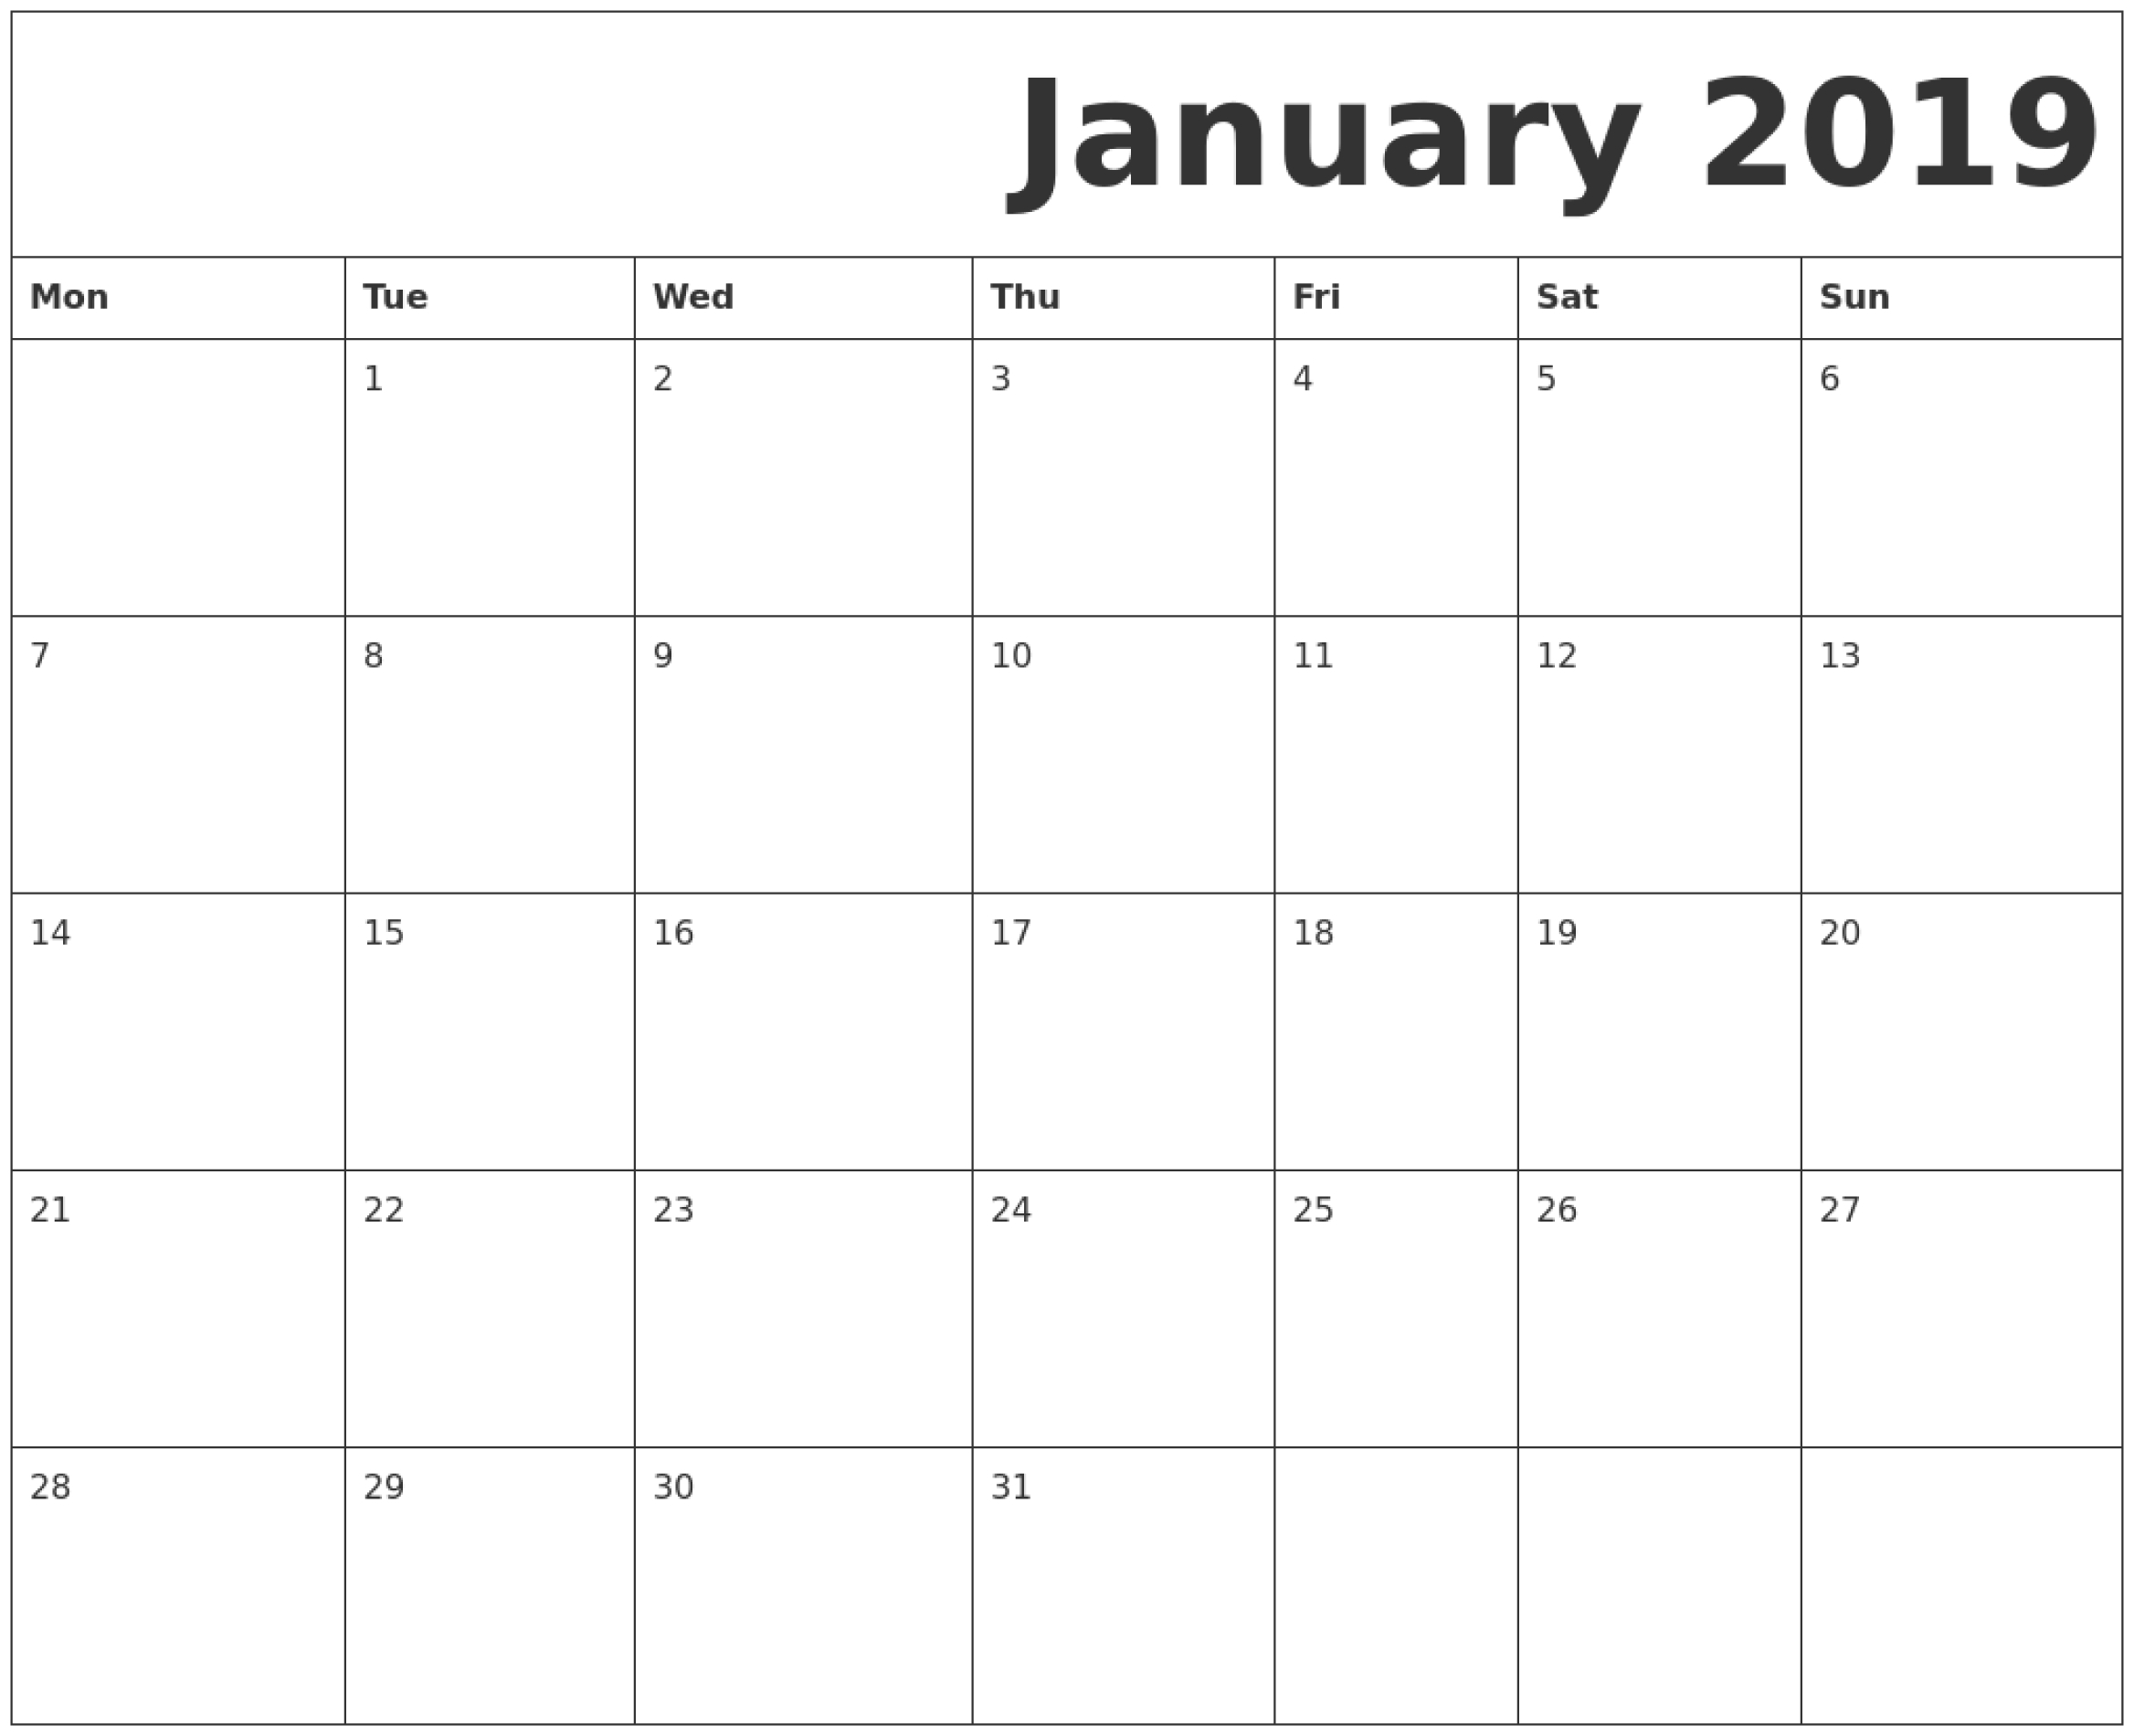 January 2019 Printable Calendar Monday Start. | January 2019-Printable Monthly Calendar Starting With Monday